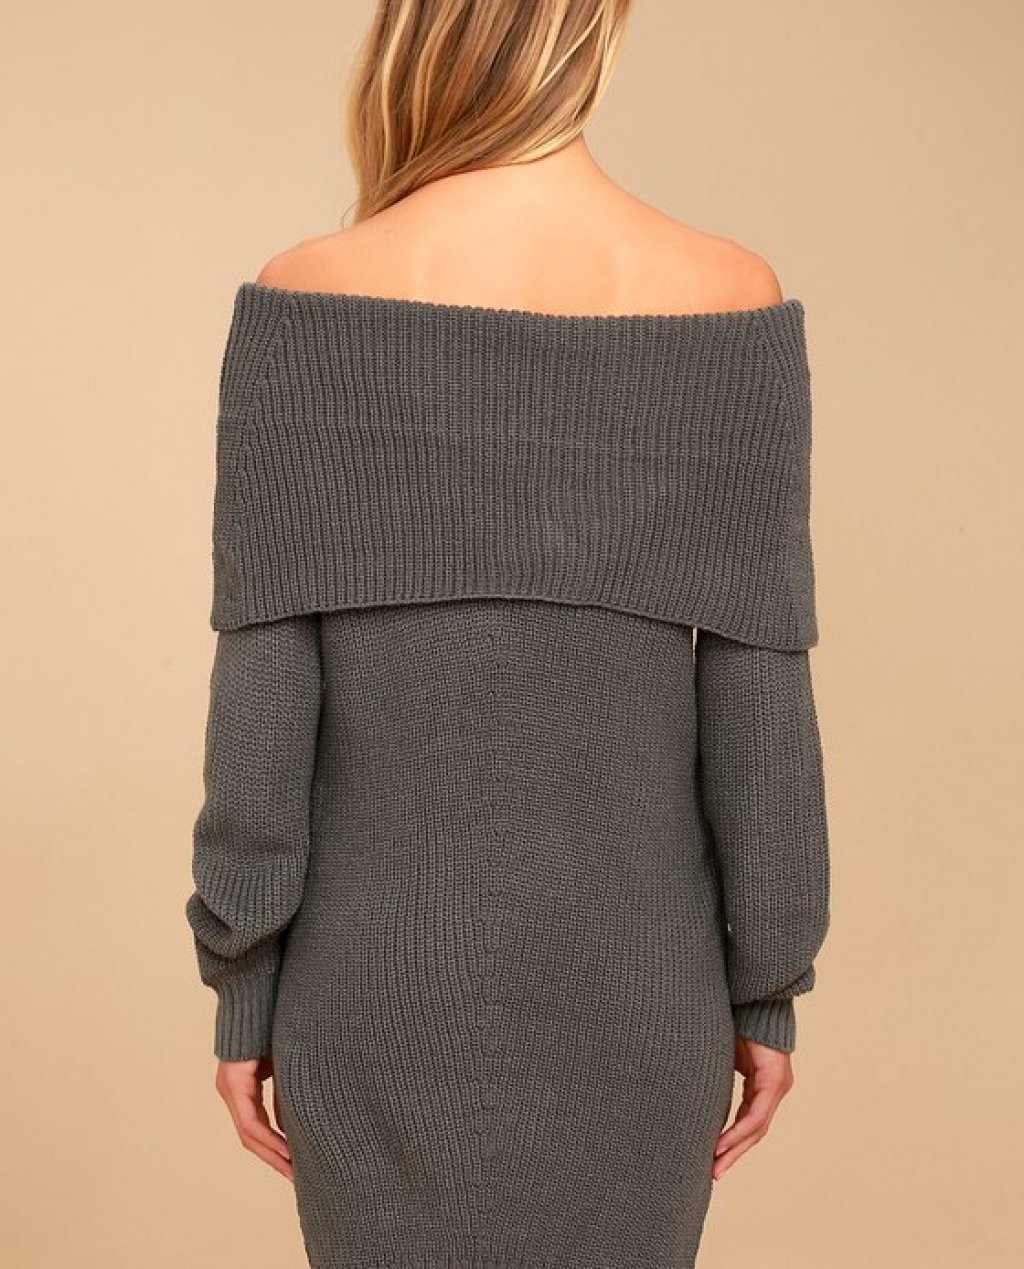 Charcoal Grey Dress - Off-the-Shoulder Sweater Dress Price $75.00